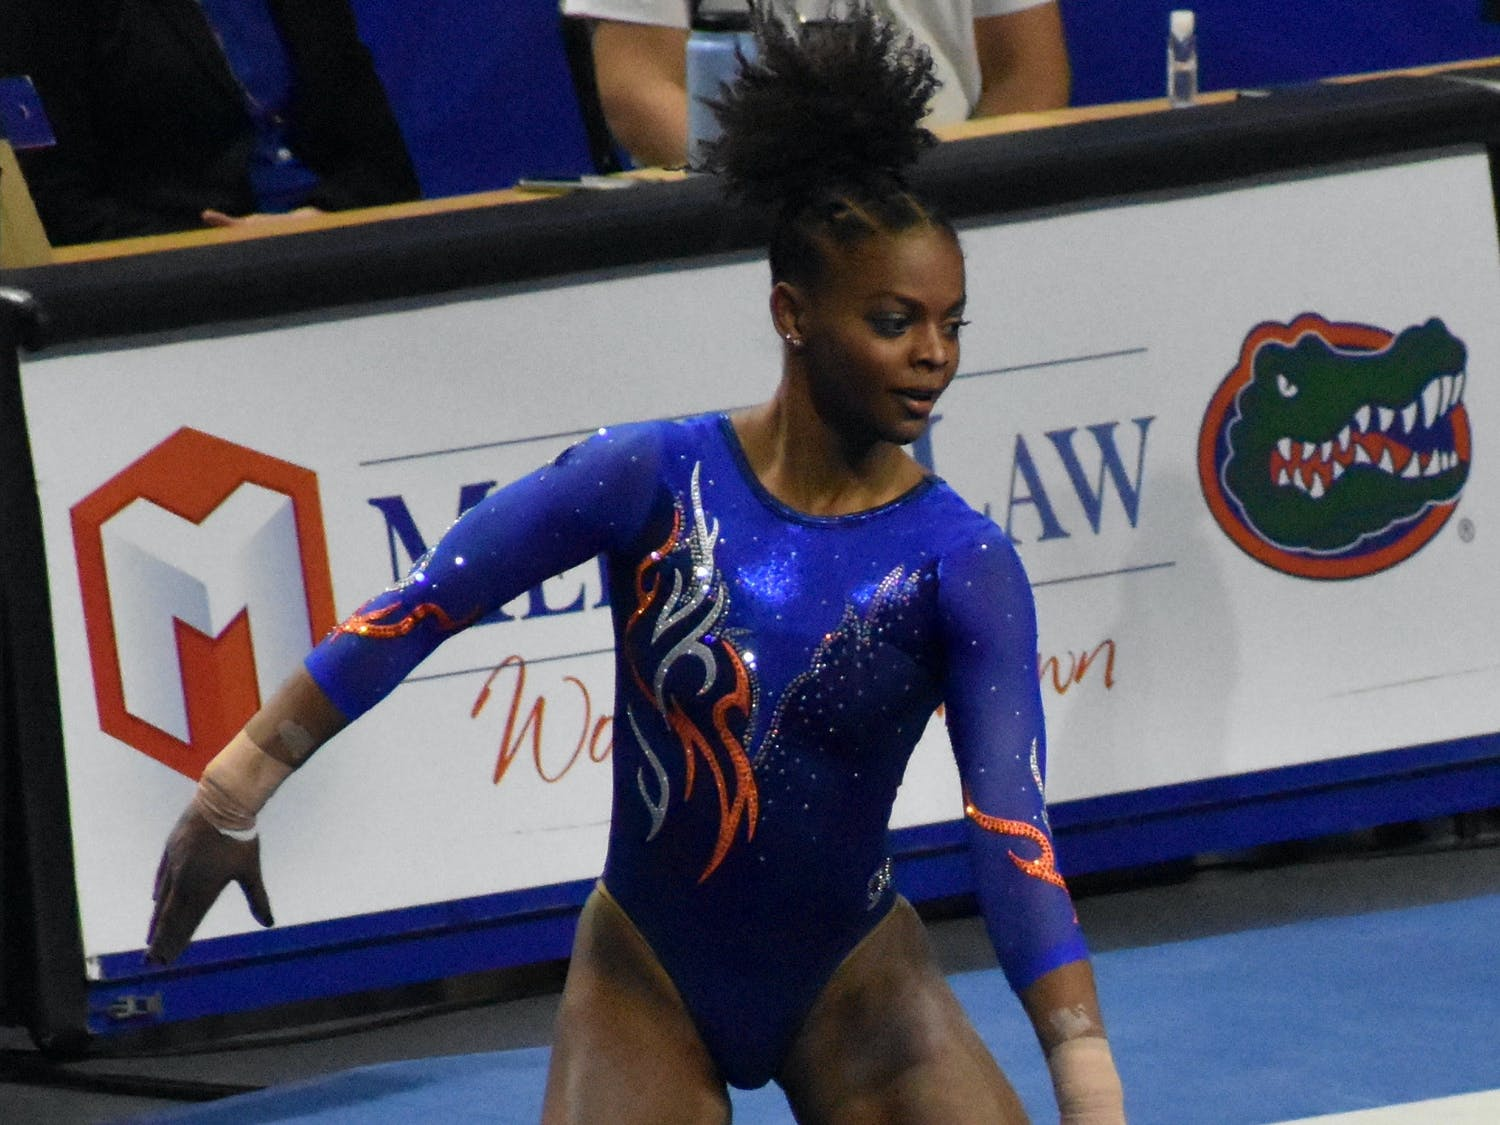 Star gymnast Trinity Thomas may perform in the bars lineup in the upcoming NCAA Regionals. Photo from UF-Mizzou meet Jan. 29.